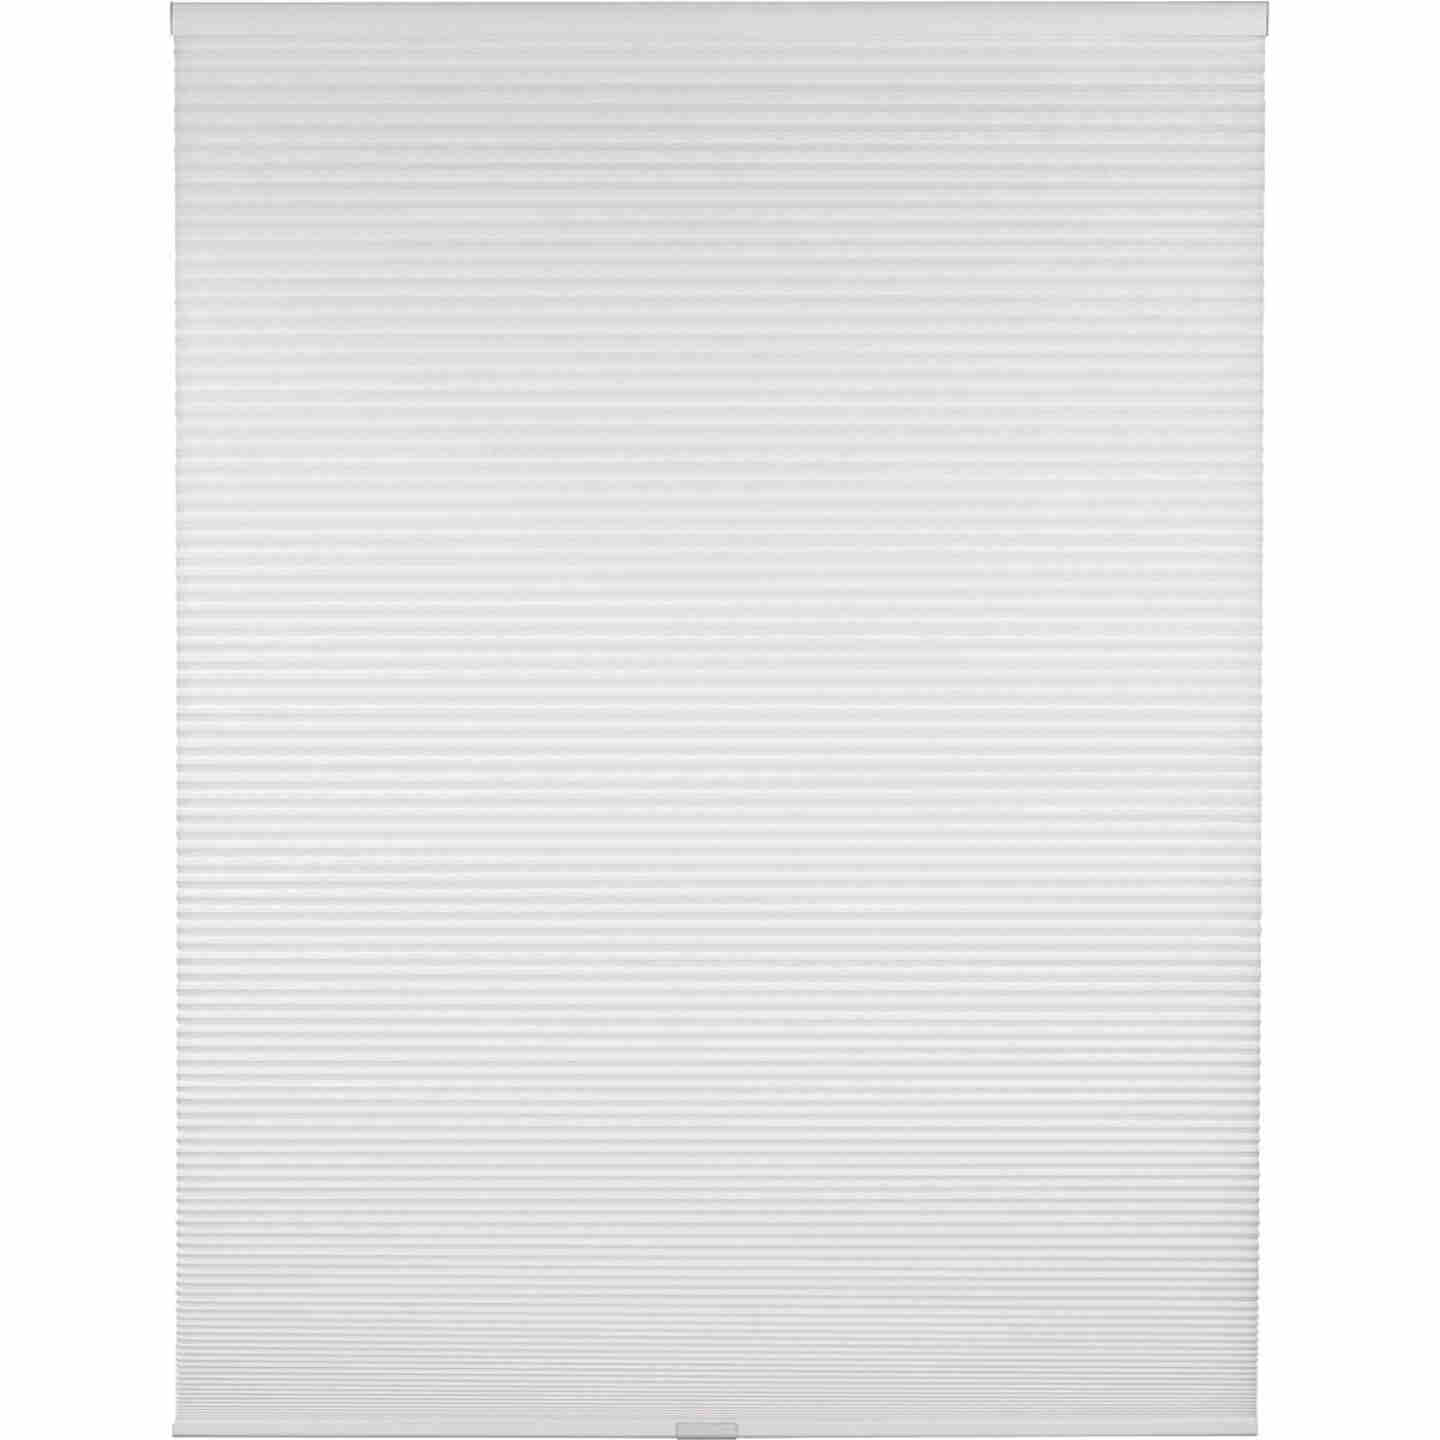 Home Impressions 1 In. Light Filtering Cellular White 36 In. x 72 In. Cordless Shade Image 1